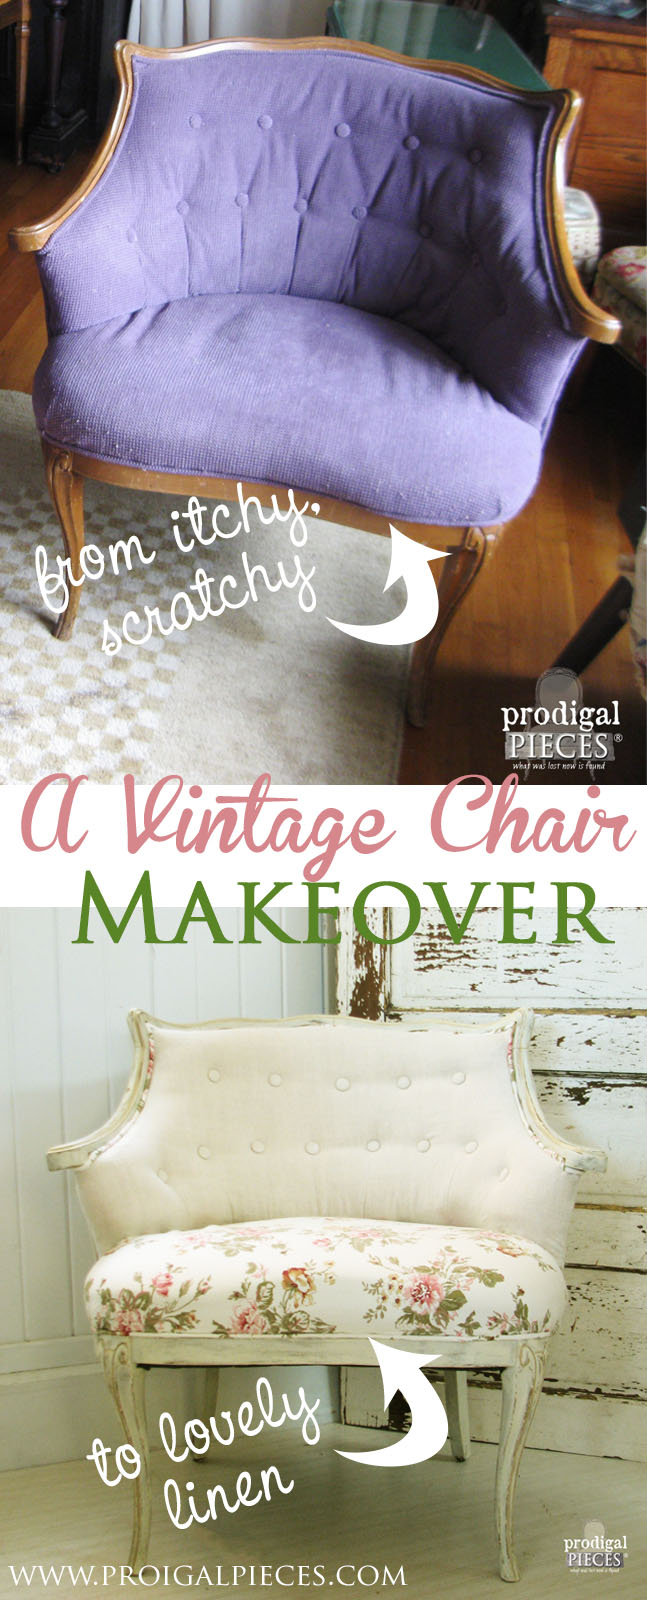 Itchy Vintage Chair Gets Lovely Linen Makeover by Prodigal Pieces www.prodigalpieces.com #prodigalpieces